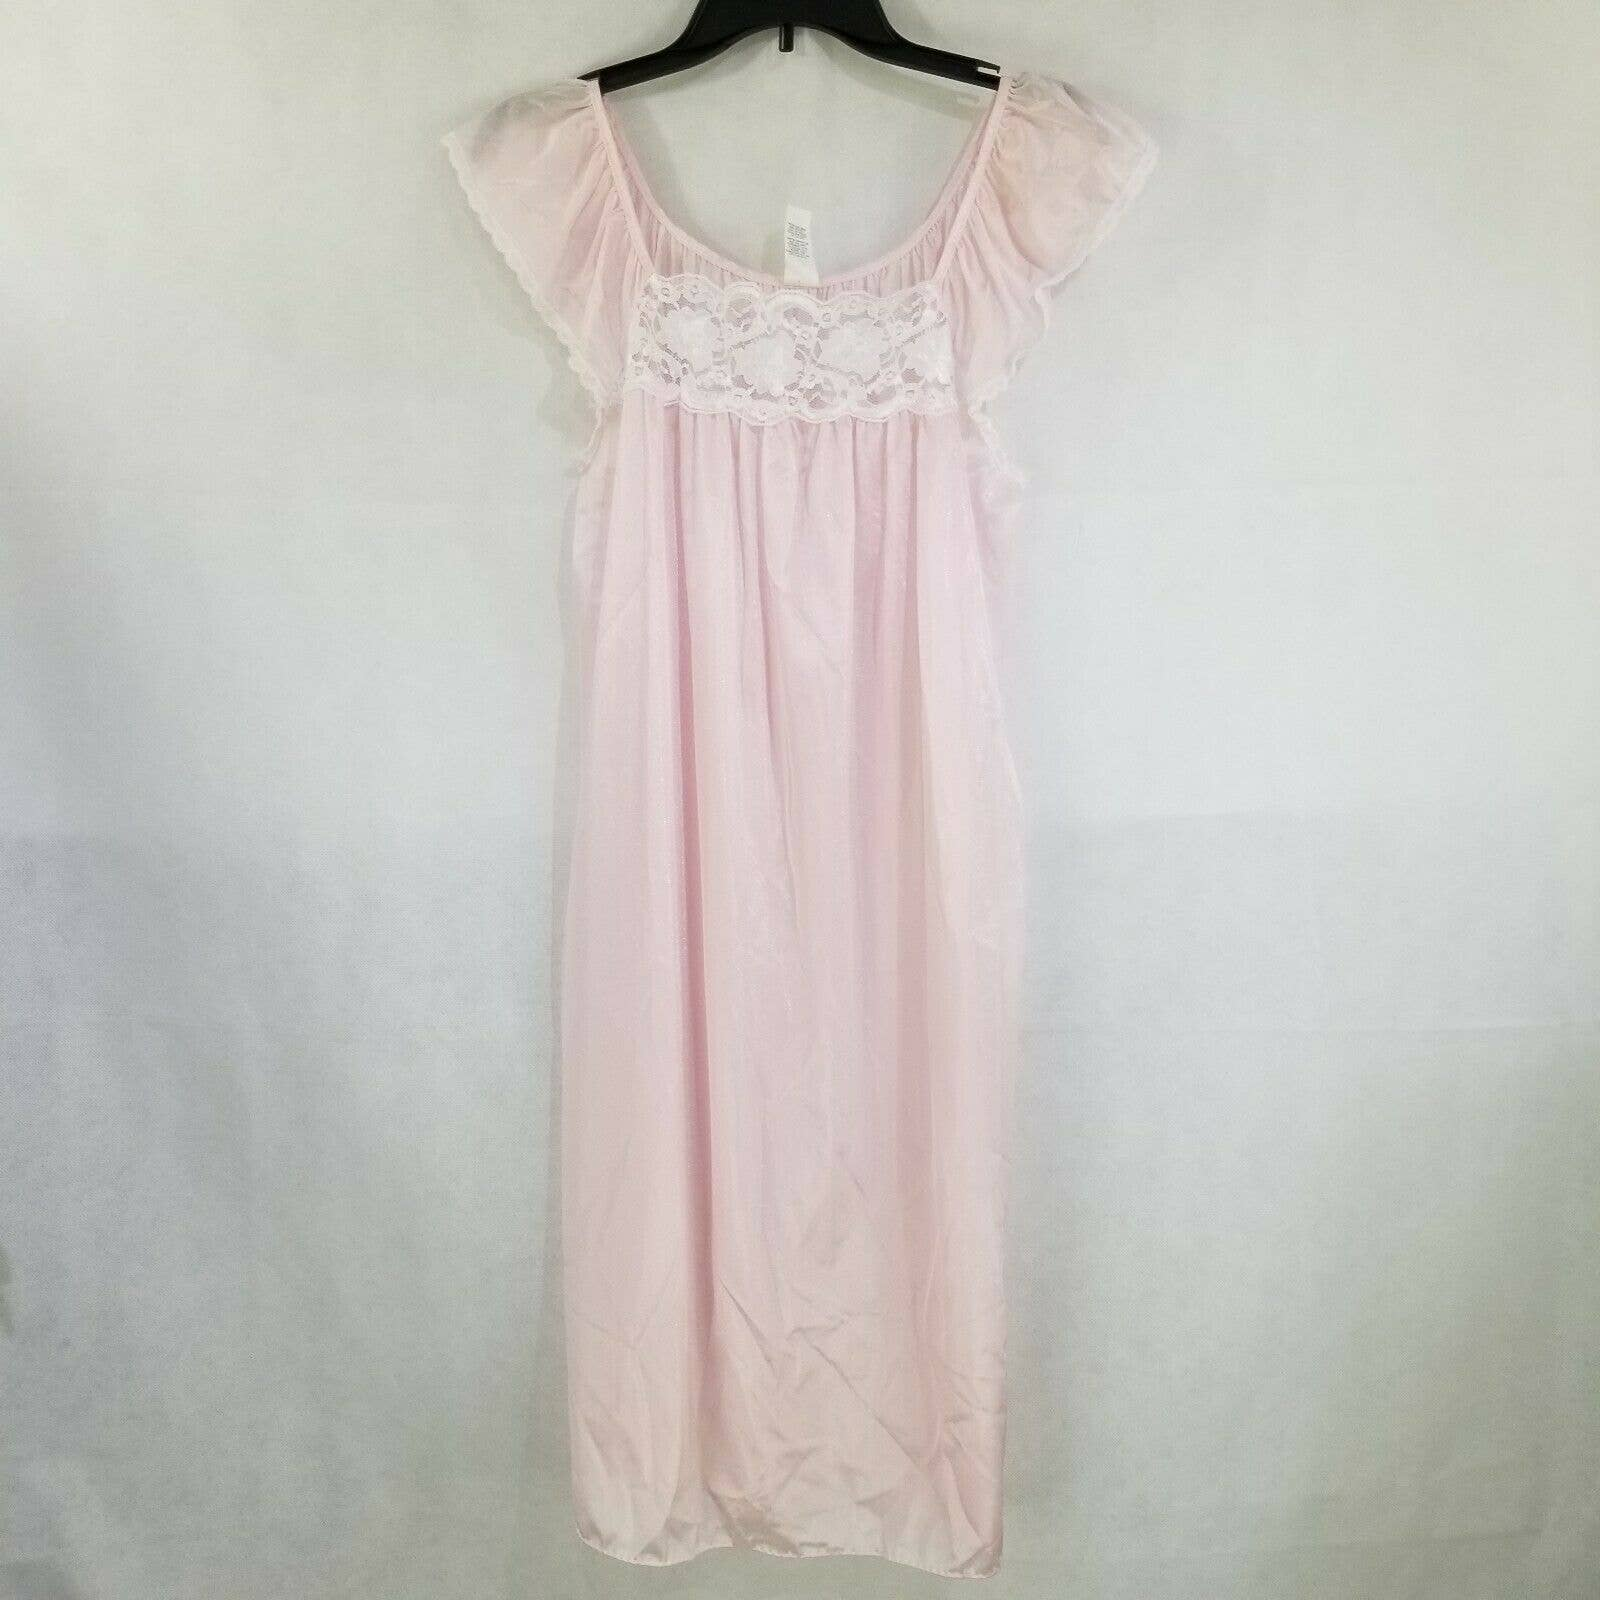 Product Image 1 - Vintage ladies nightgown  Sleeveless style  Pink with